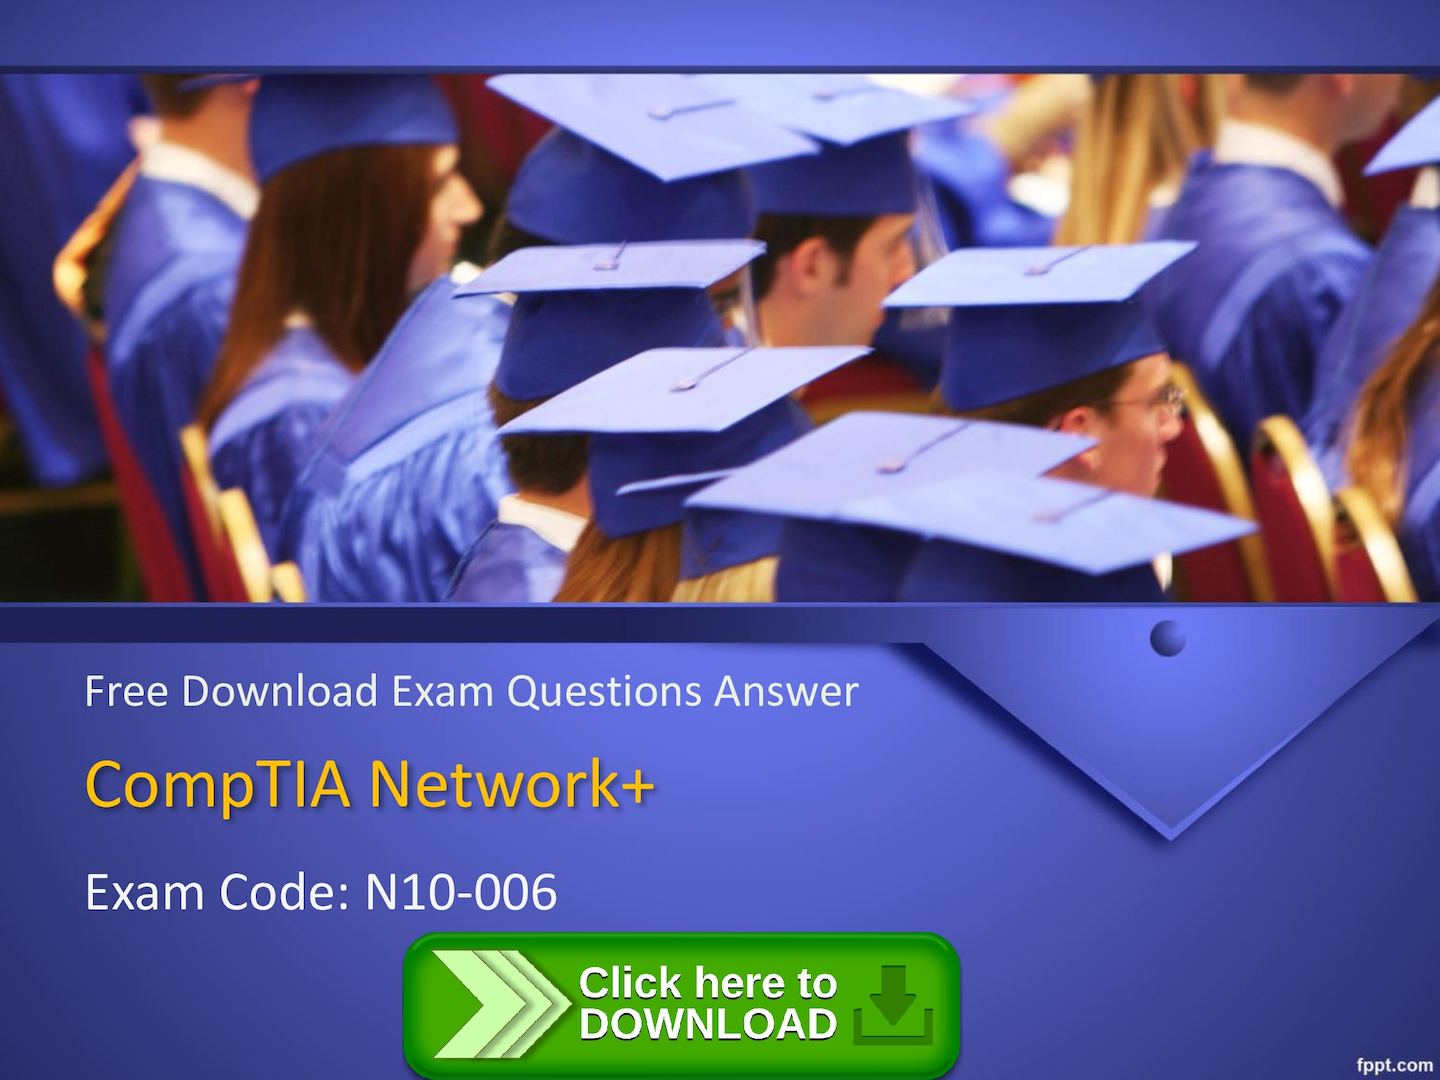 Calaméo - Free N10-006 Real Exam Questions Answers